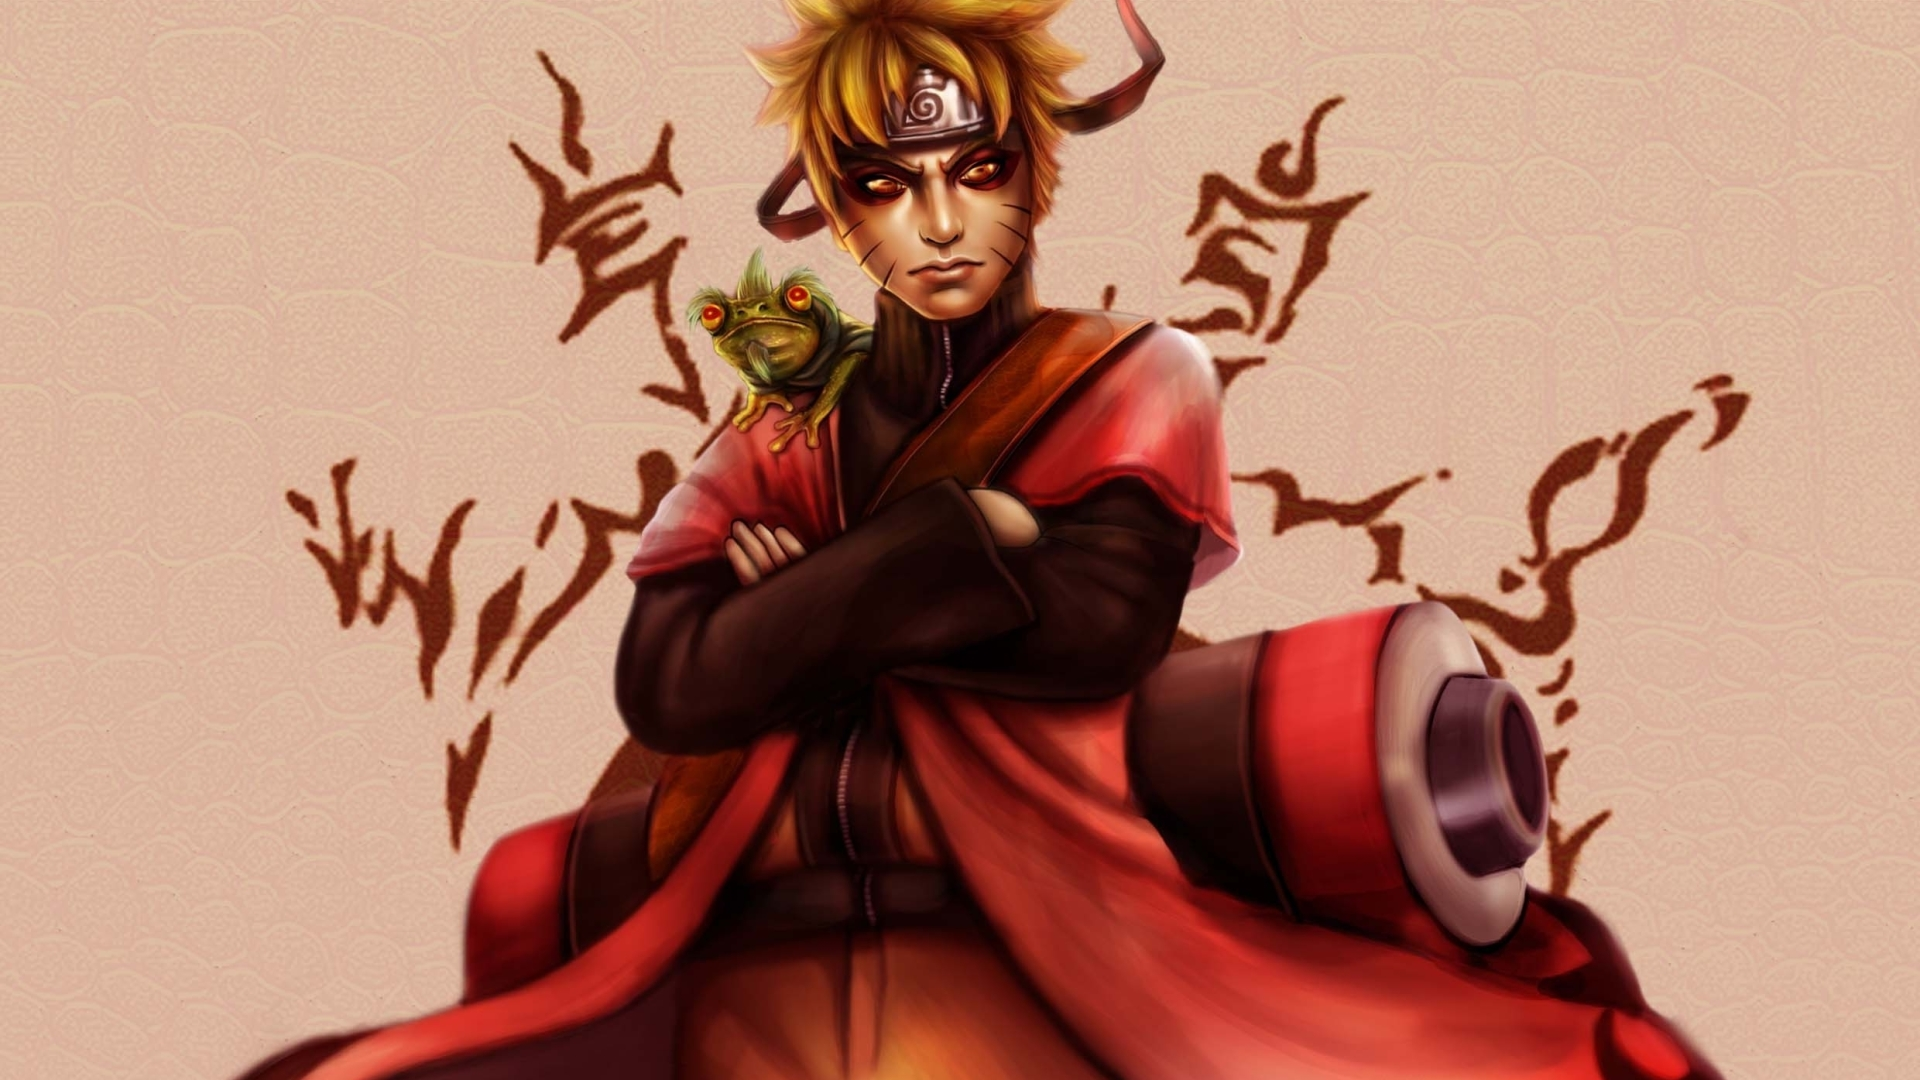 Naruto Sage Mode Uzumaki Naruto HD Wallpaper Background